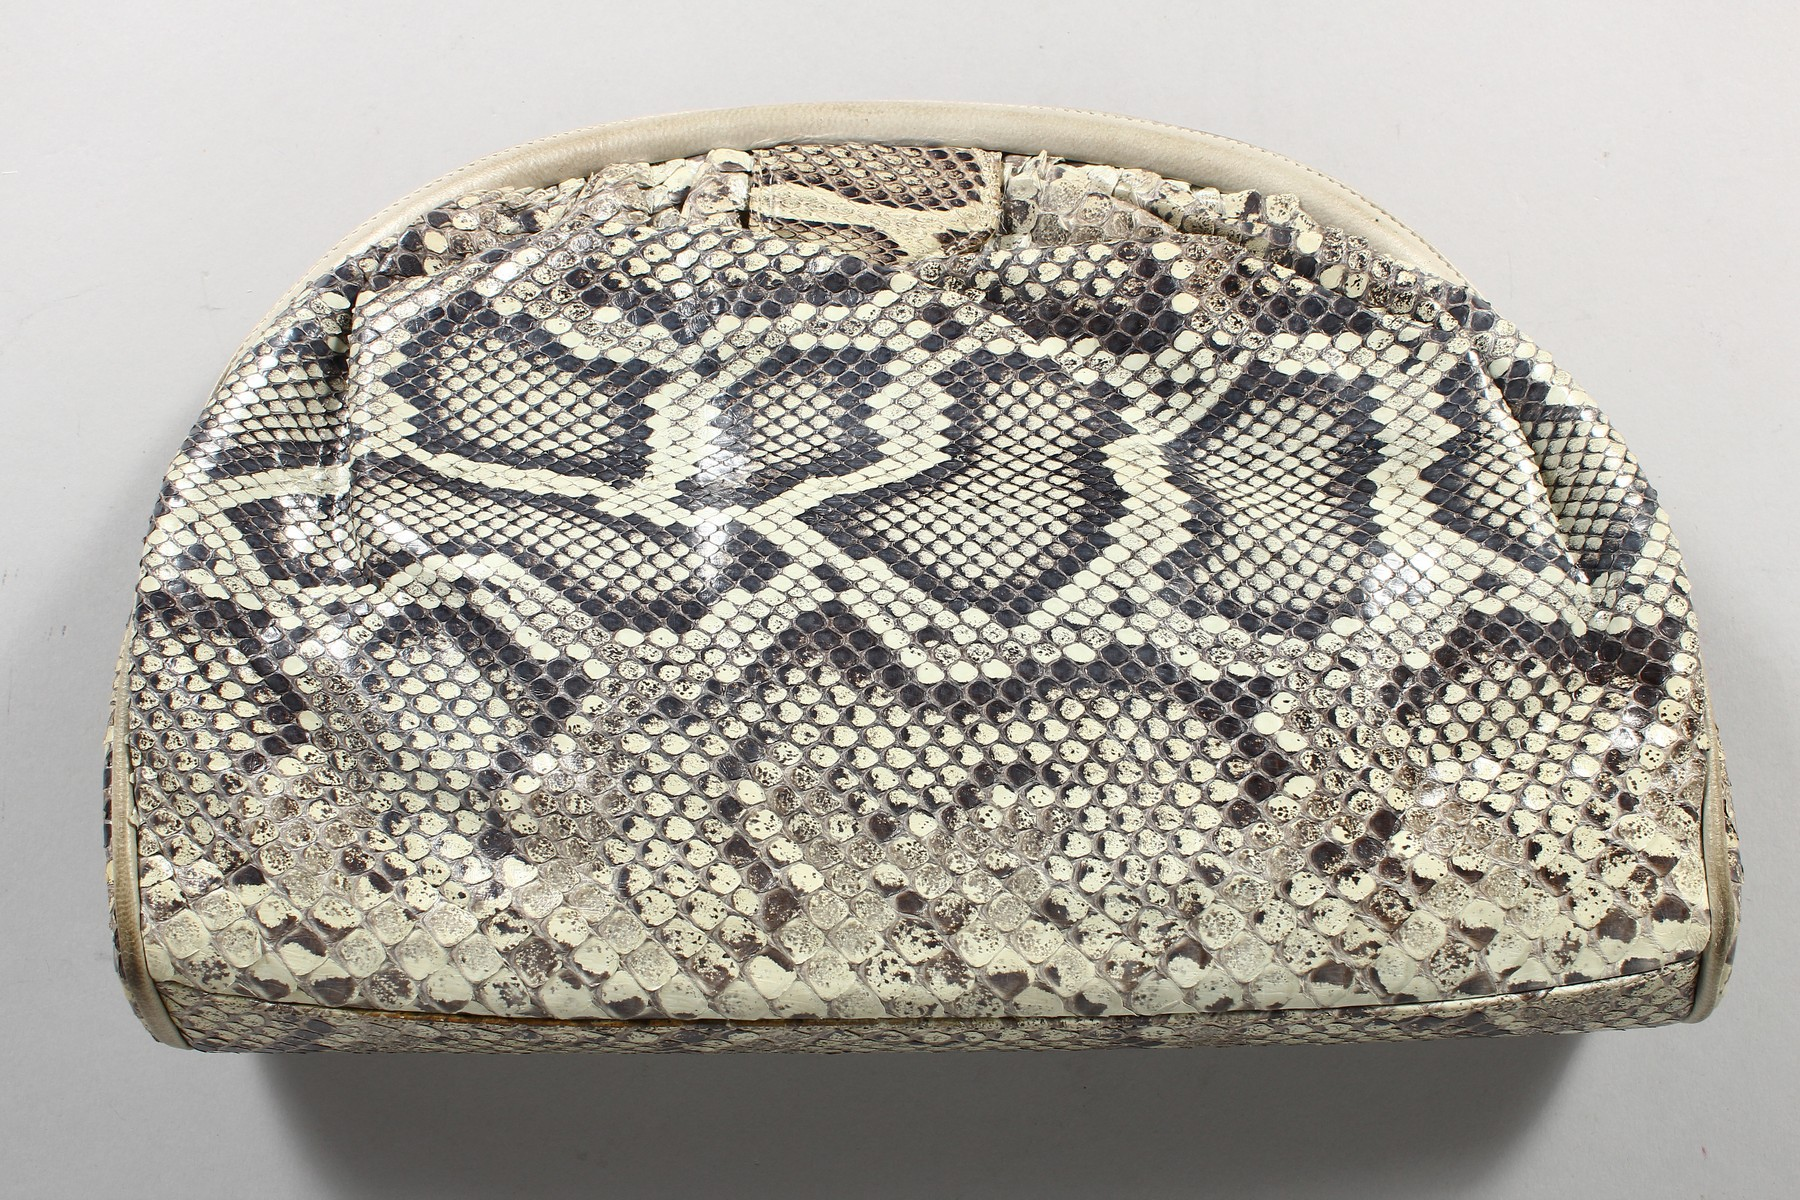 A CHANEL SNAKESKIN BAG with leather interior. Made in Italy. 11ins long. - Image 8 of 9